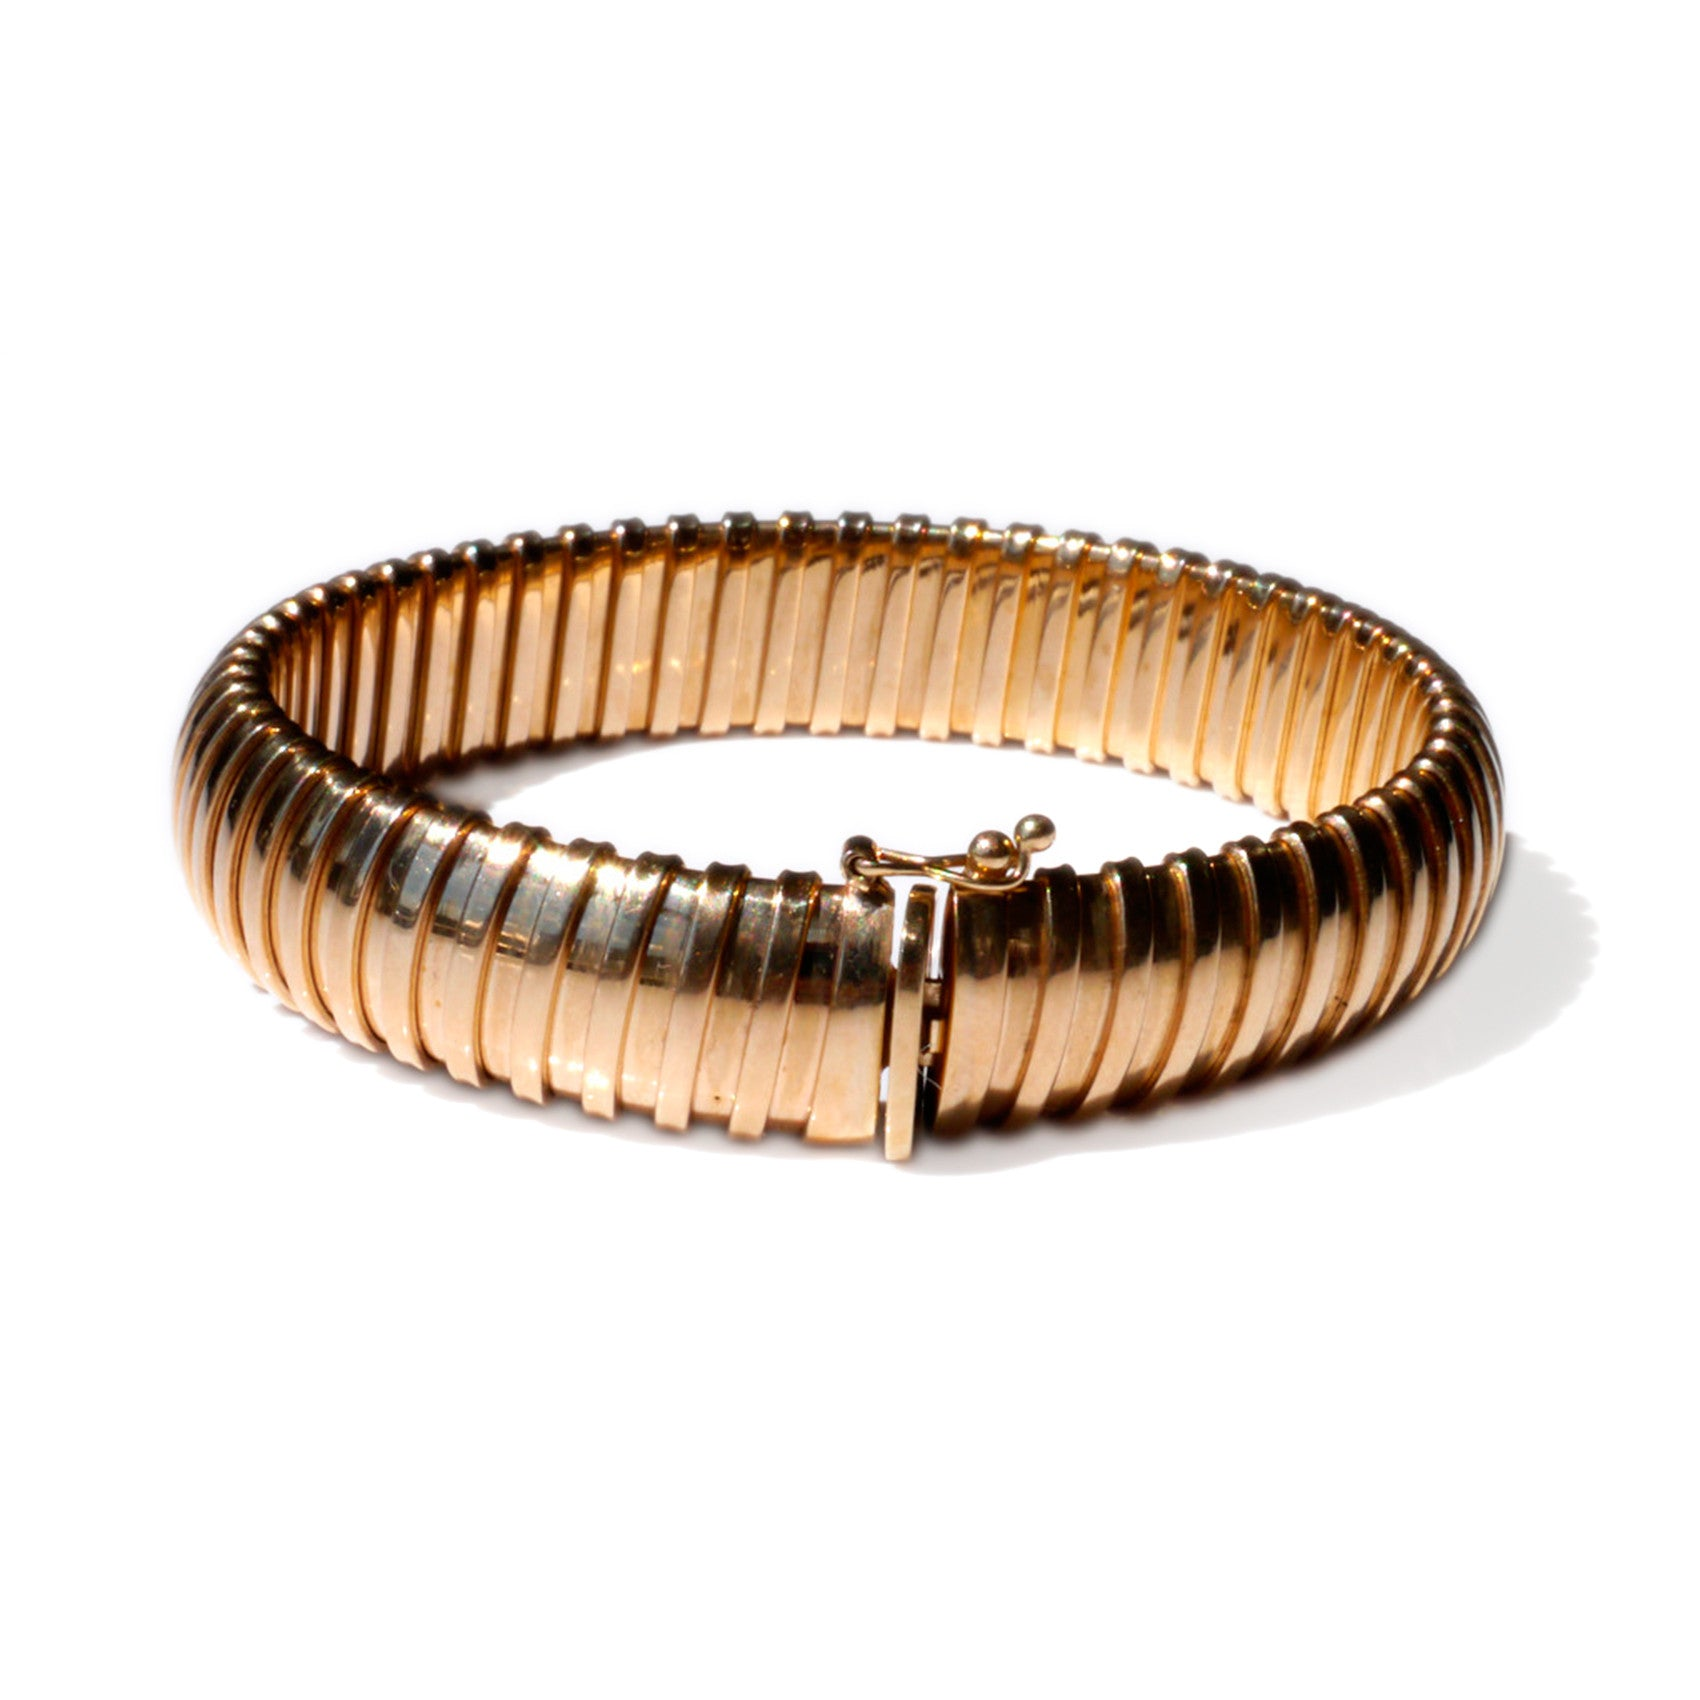 Gold Glorious Gold: Articulated Bracelet